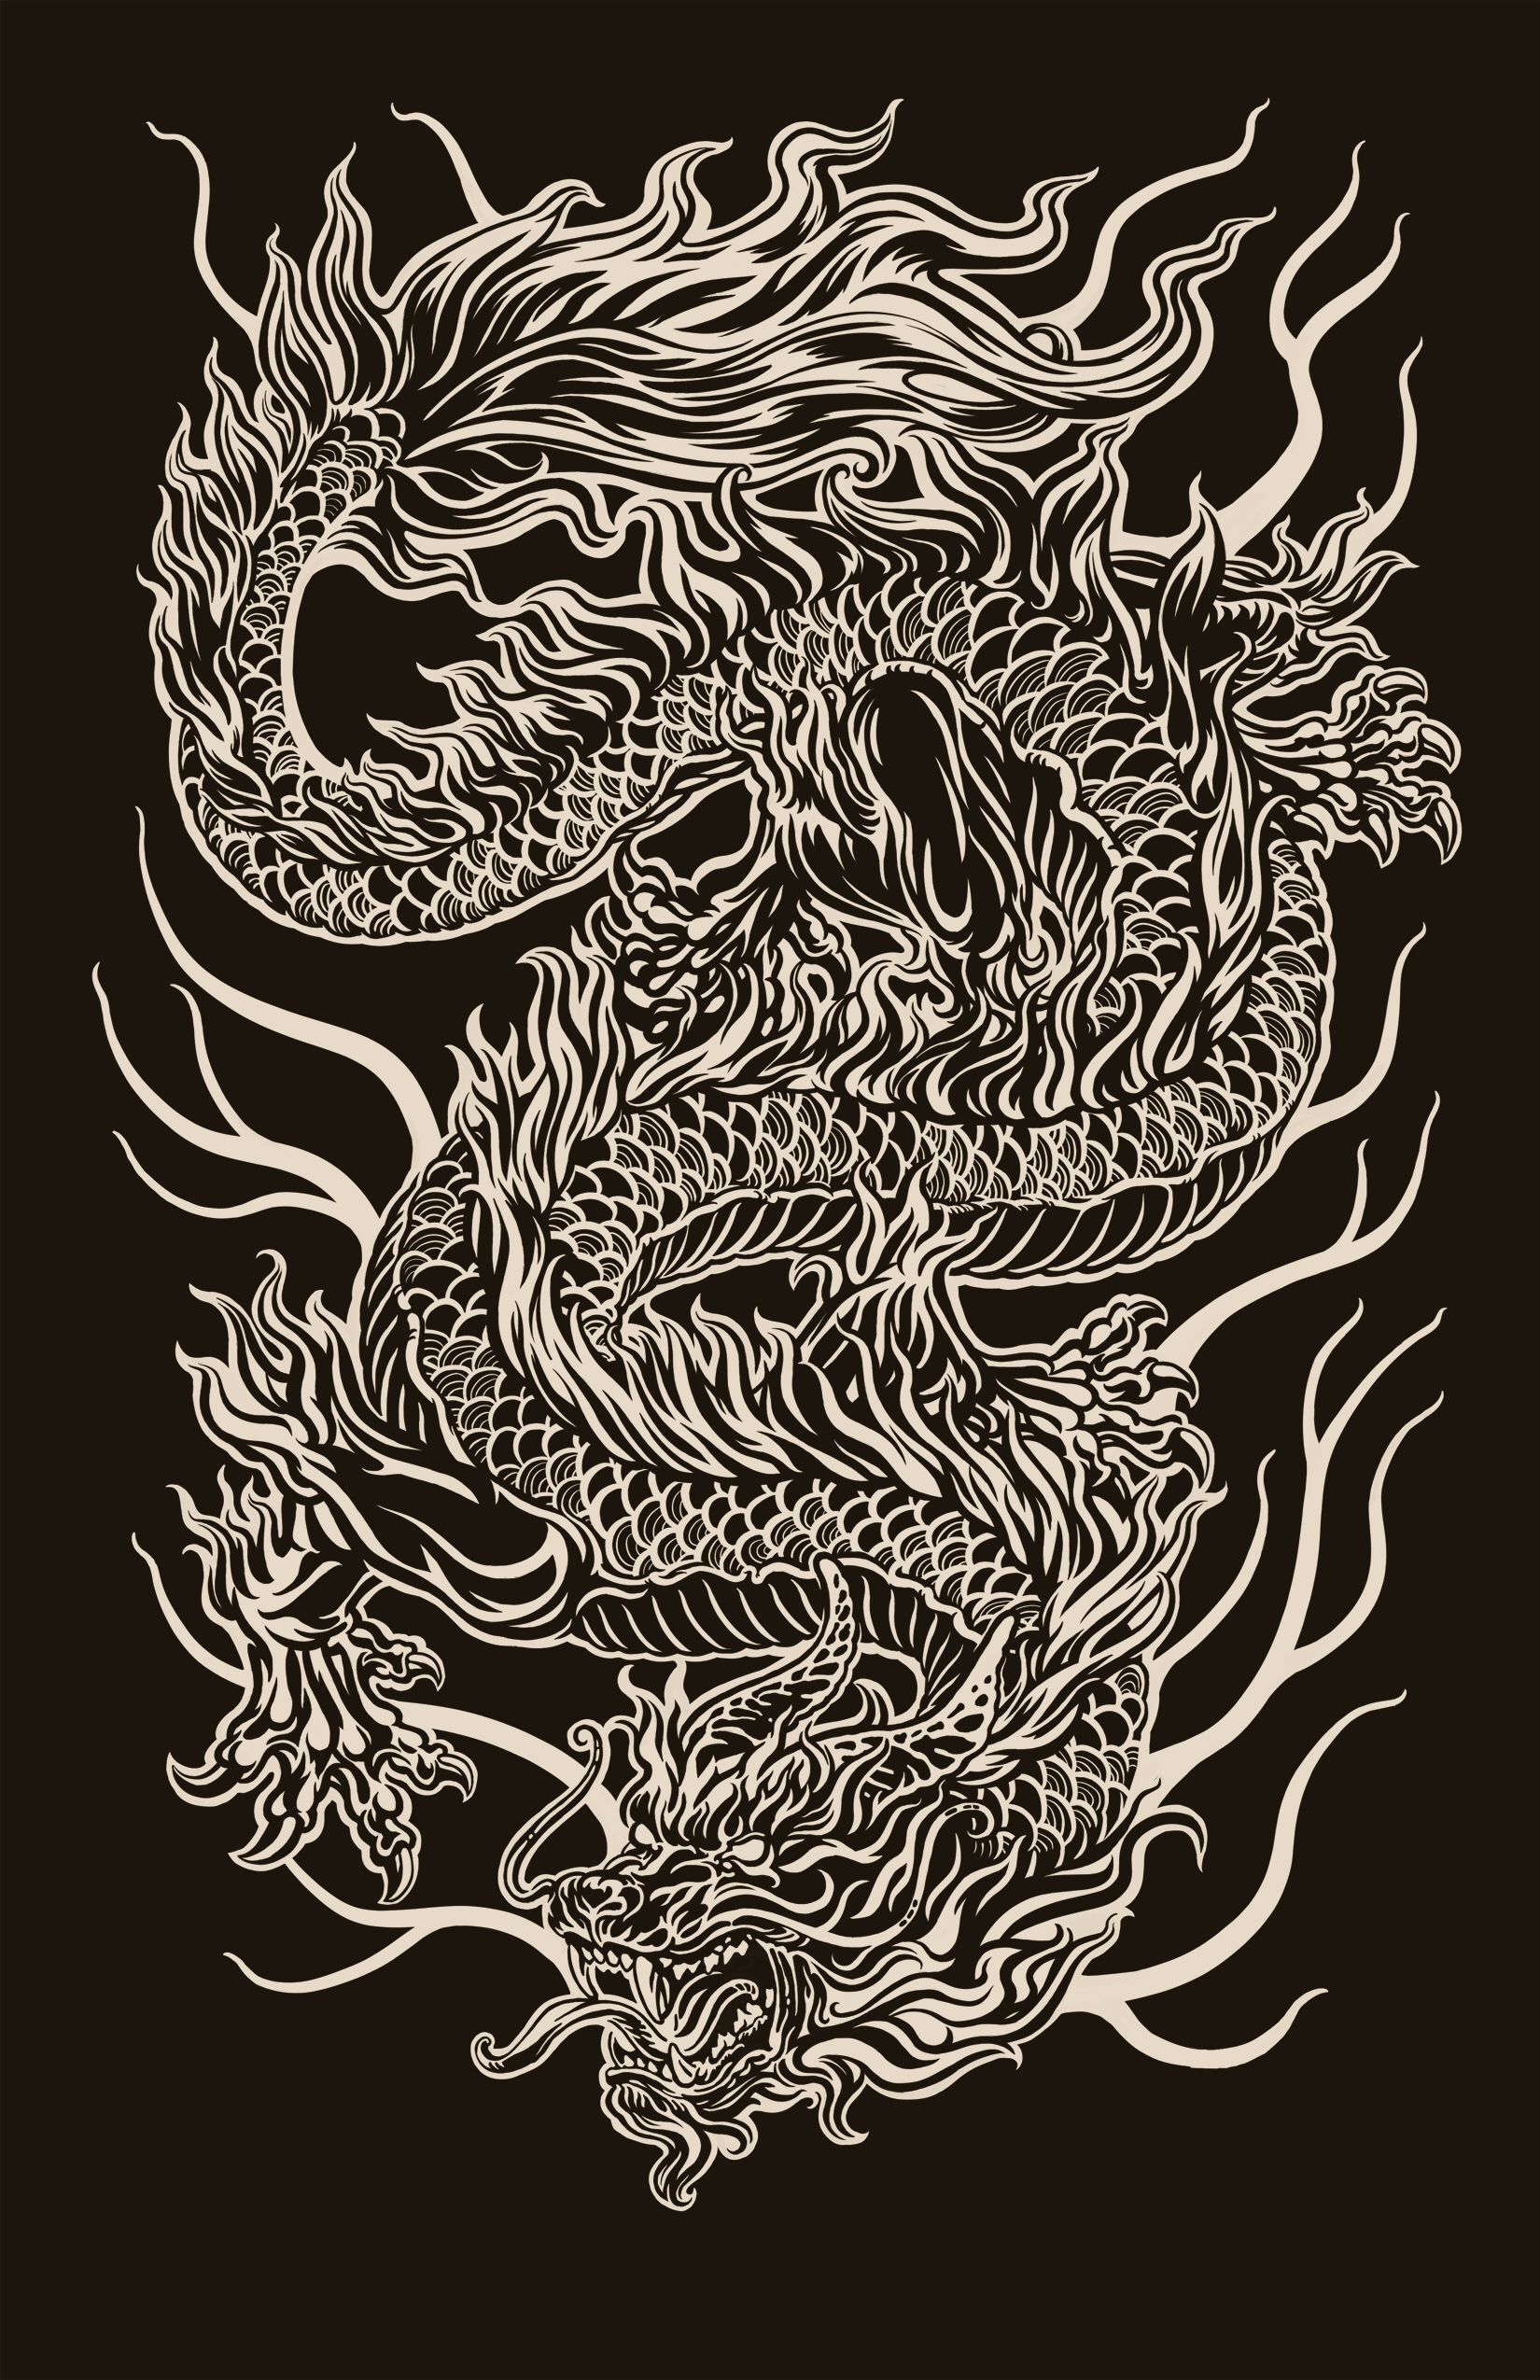 4cbb20413 Pin by paul n on dragons - Asian | Chinese dragon tattoos, Dragon art, Chinese  dragon